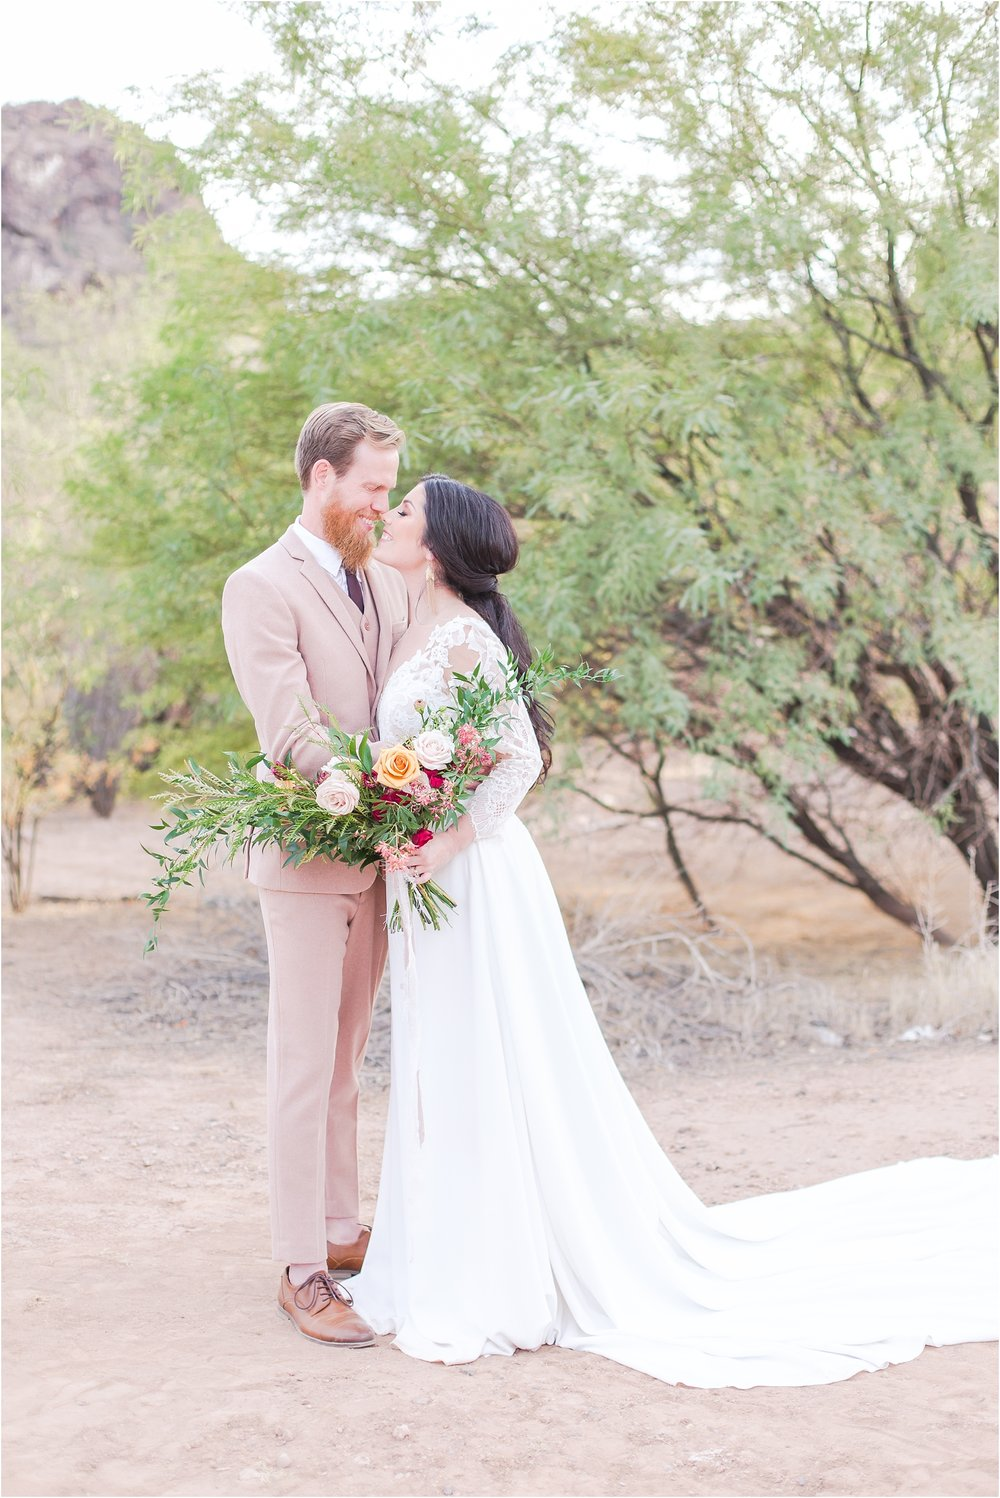 intimate-and-romantic-desert-wedding-photos-at-phoenix-marriott-tempe-at-the-buttes-in-tempe-arizona-by-courtney-carolyn-photography_0026.jpg